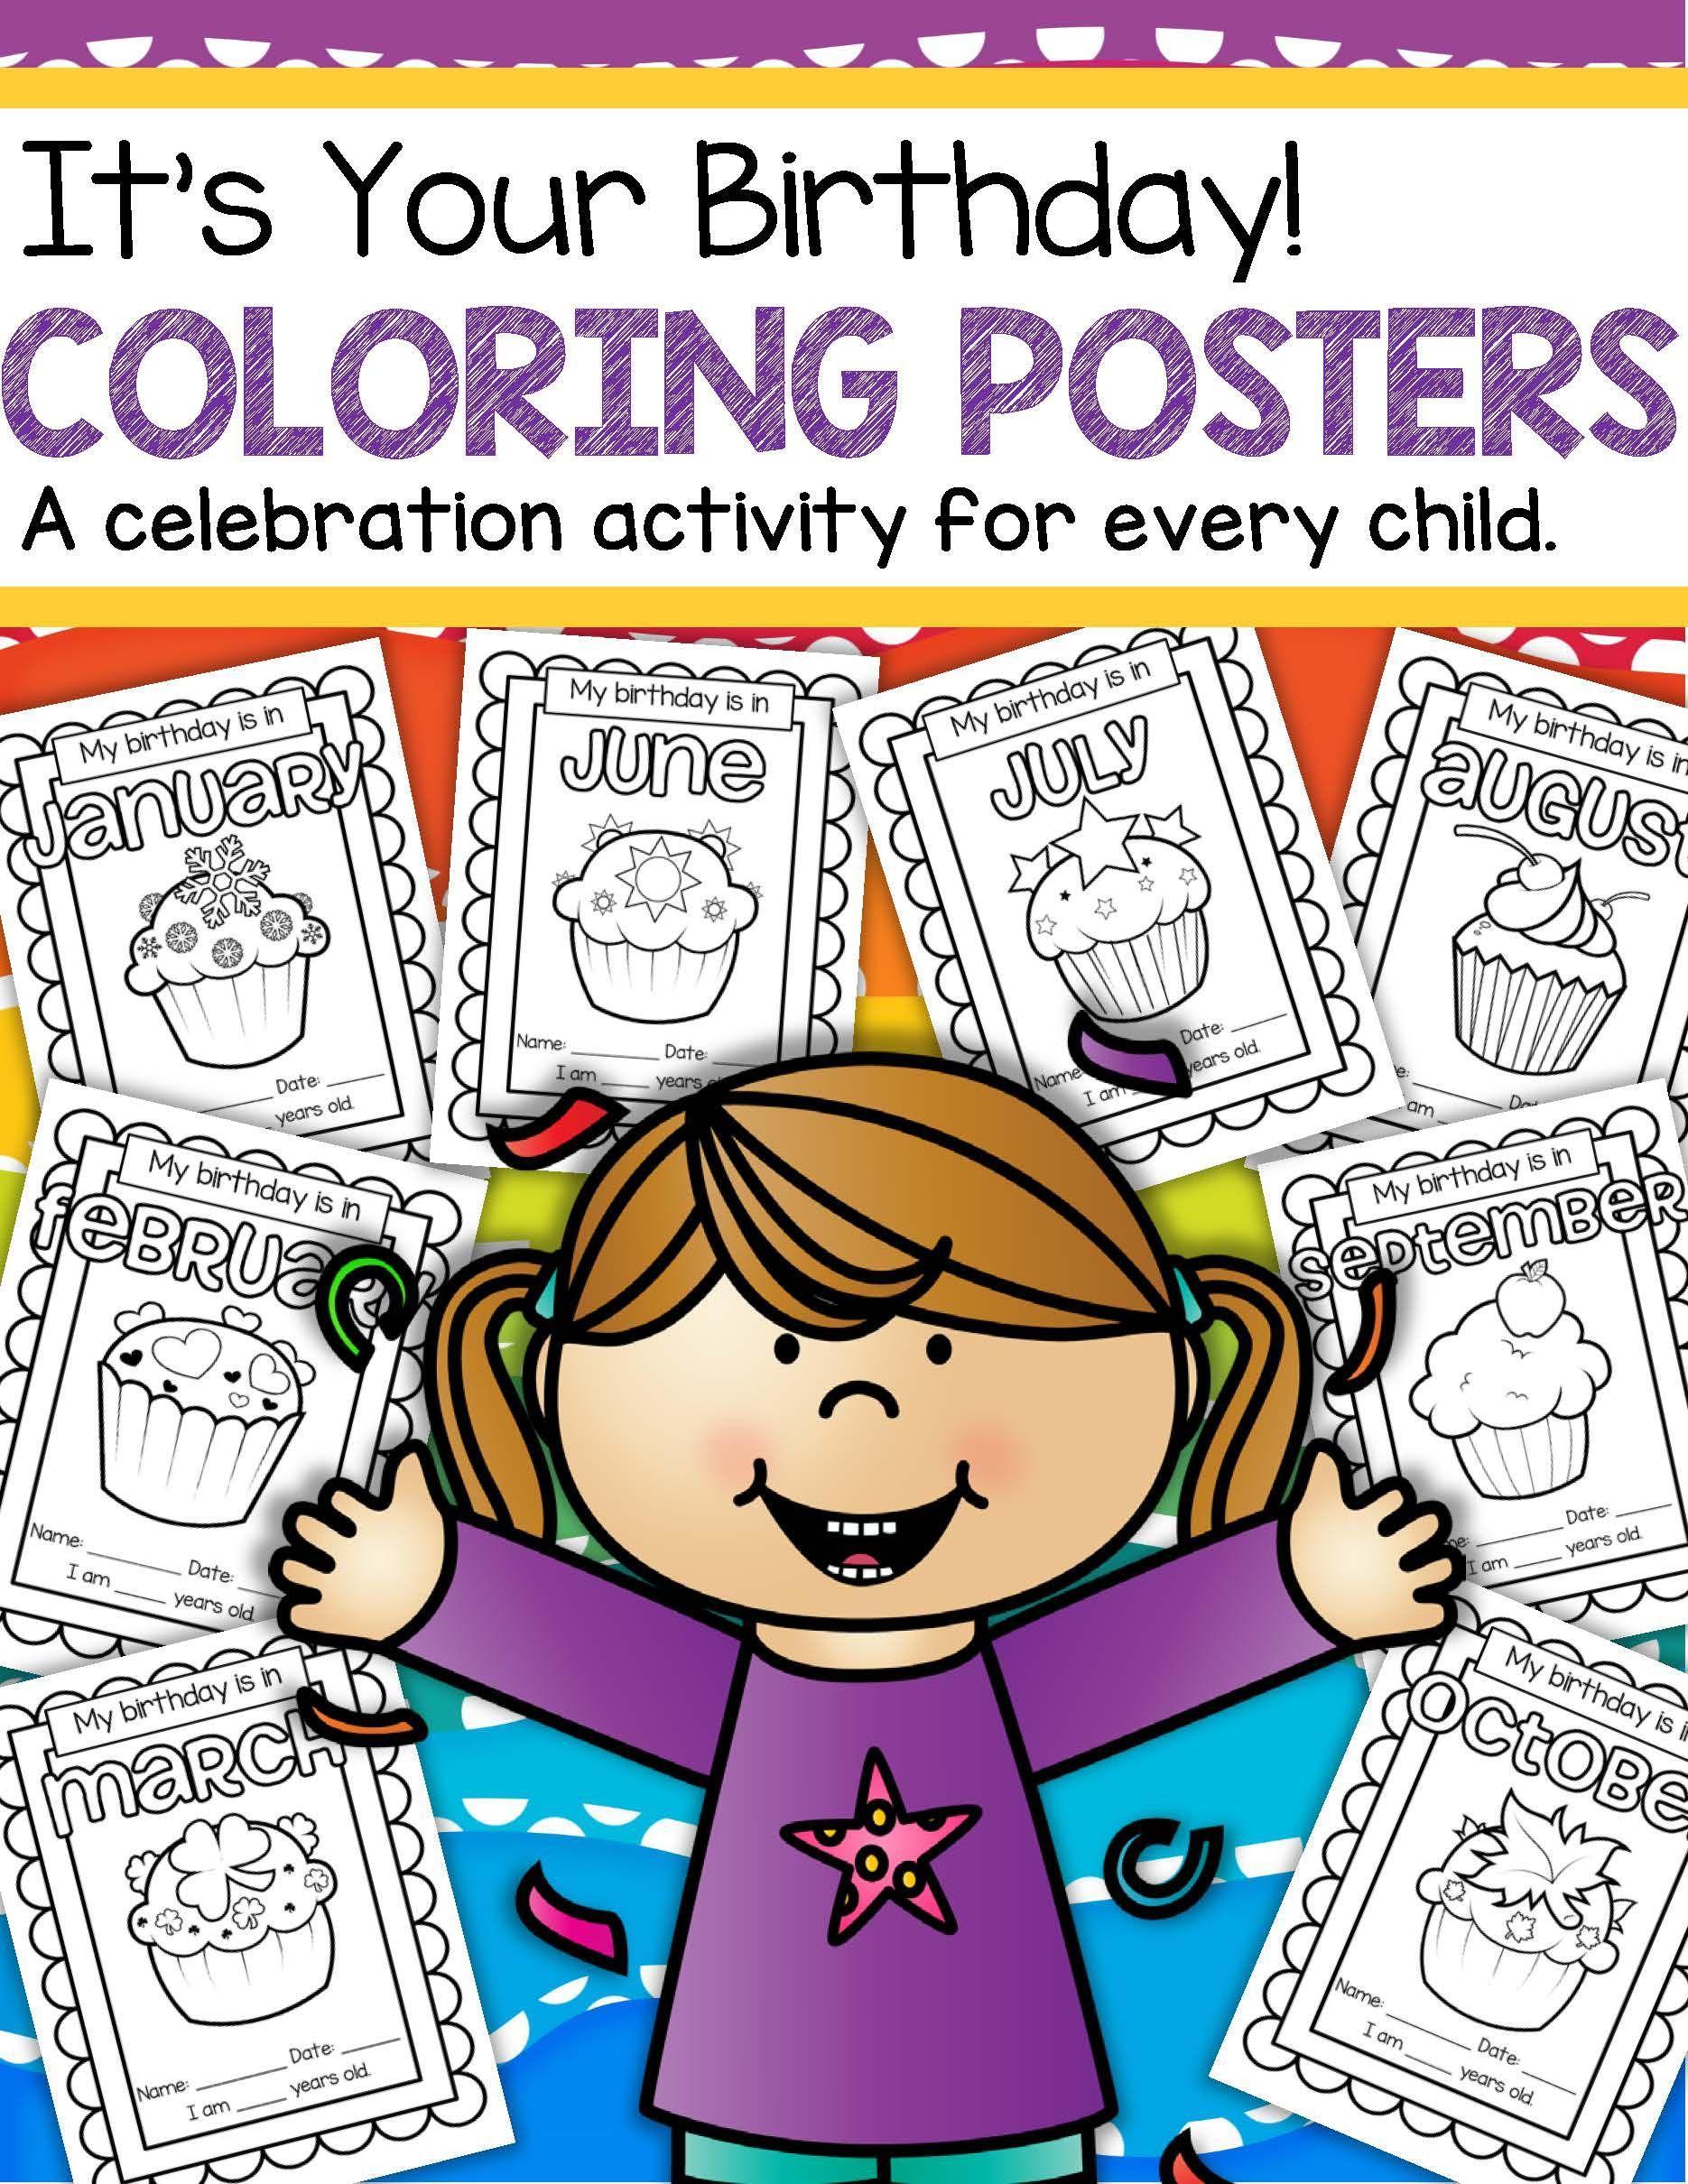 Birthday Posters To Decorate By The Month